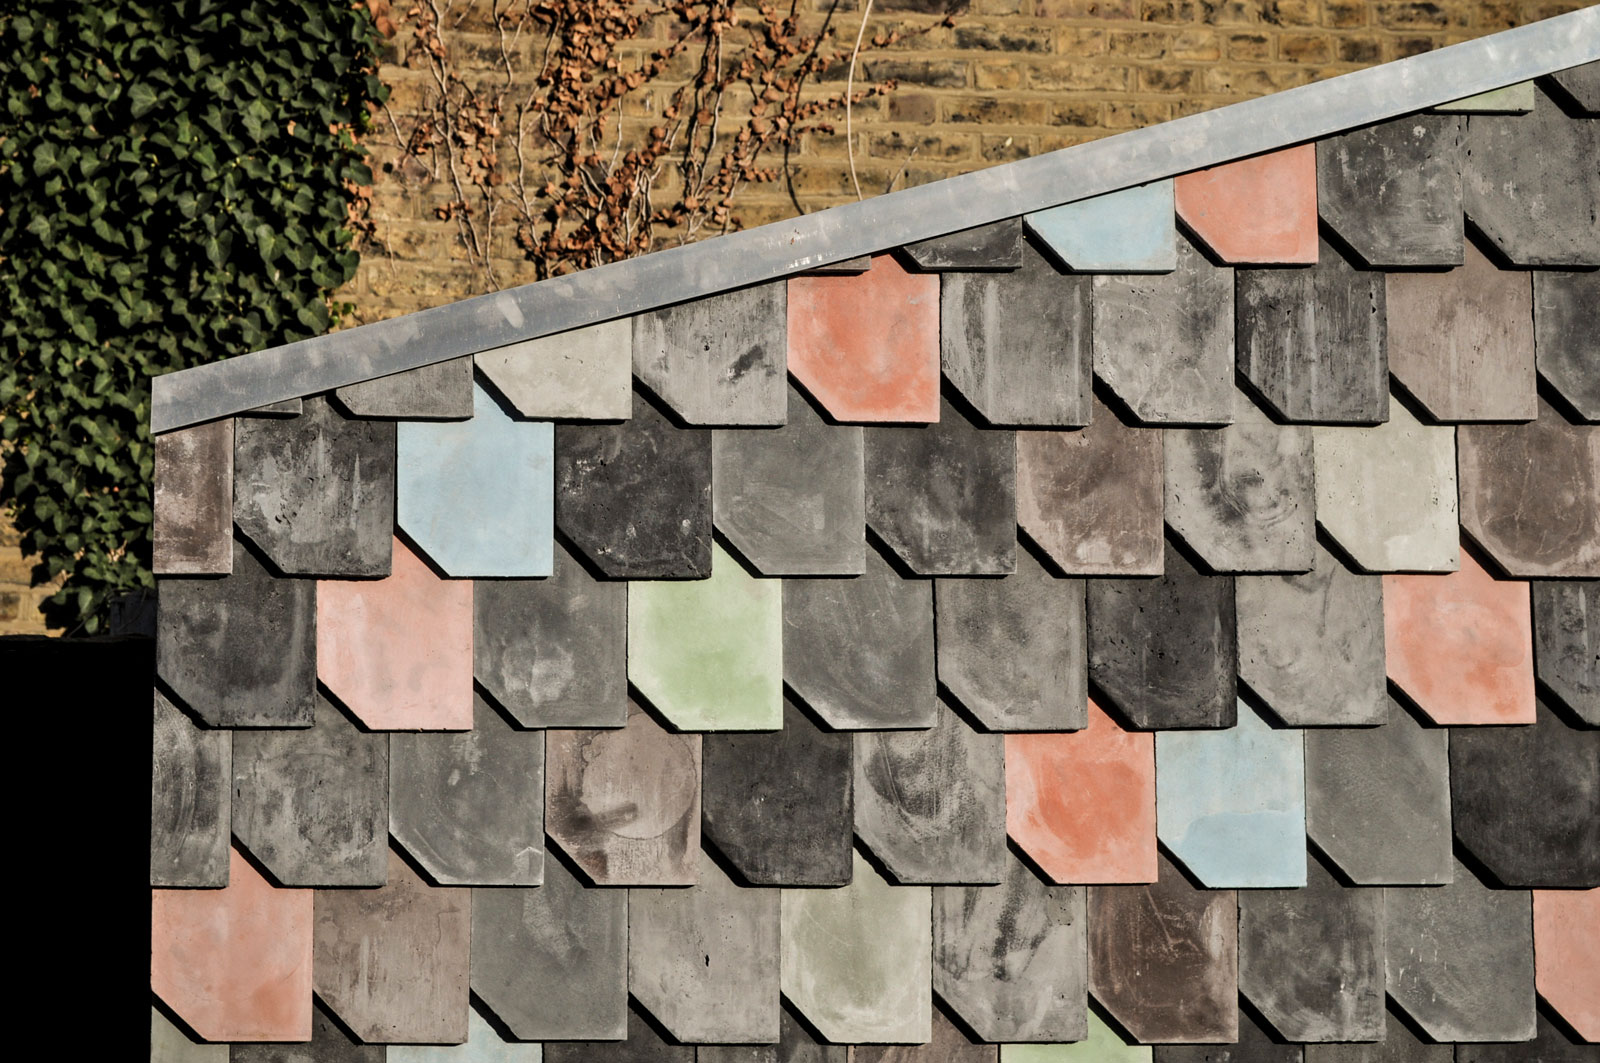 Tiles of the Holloway Lightbox project by Studio Bark